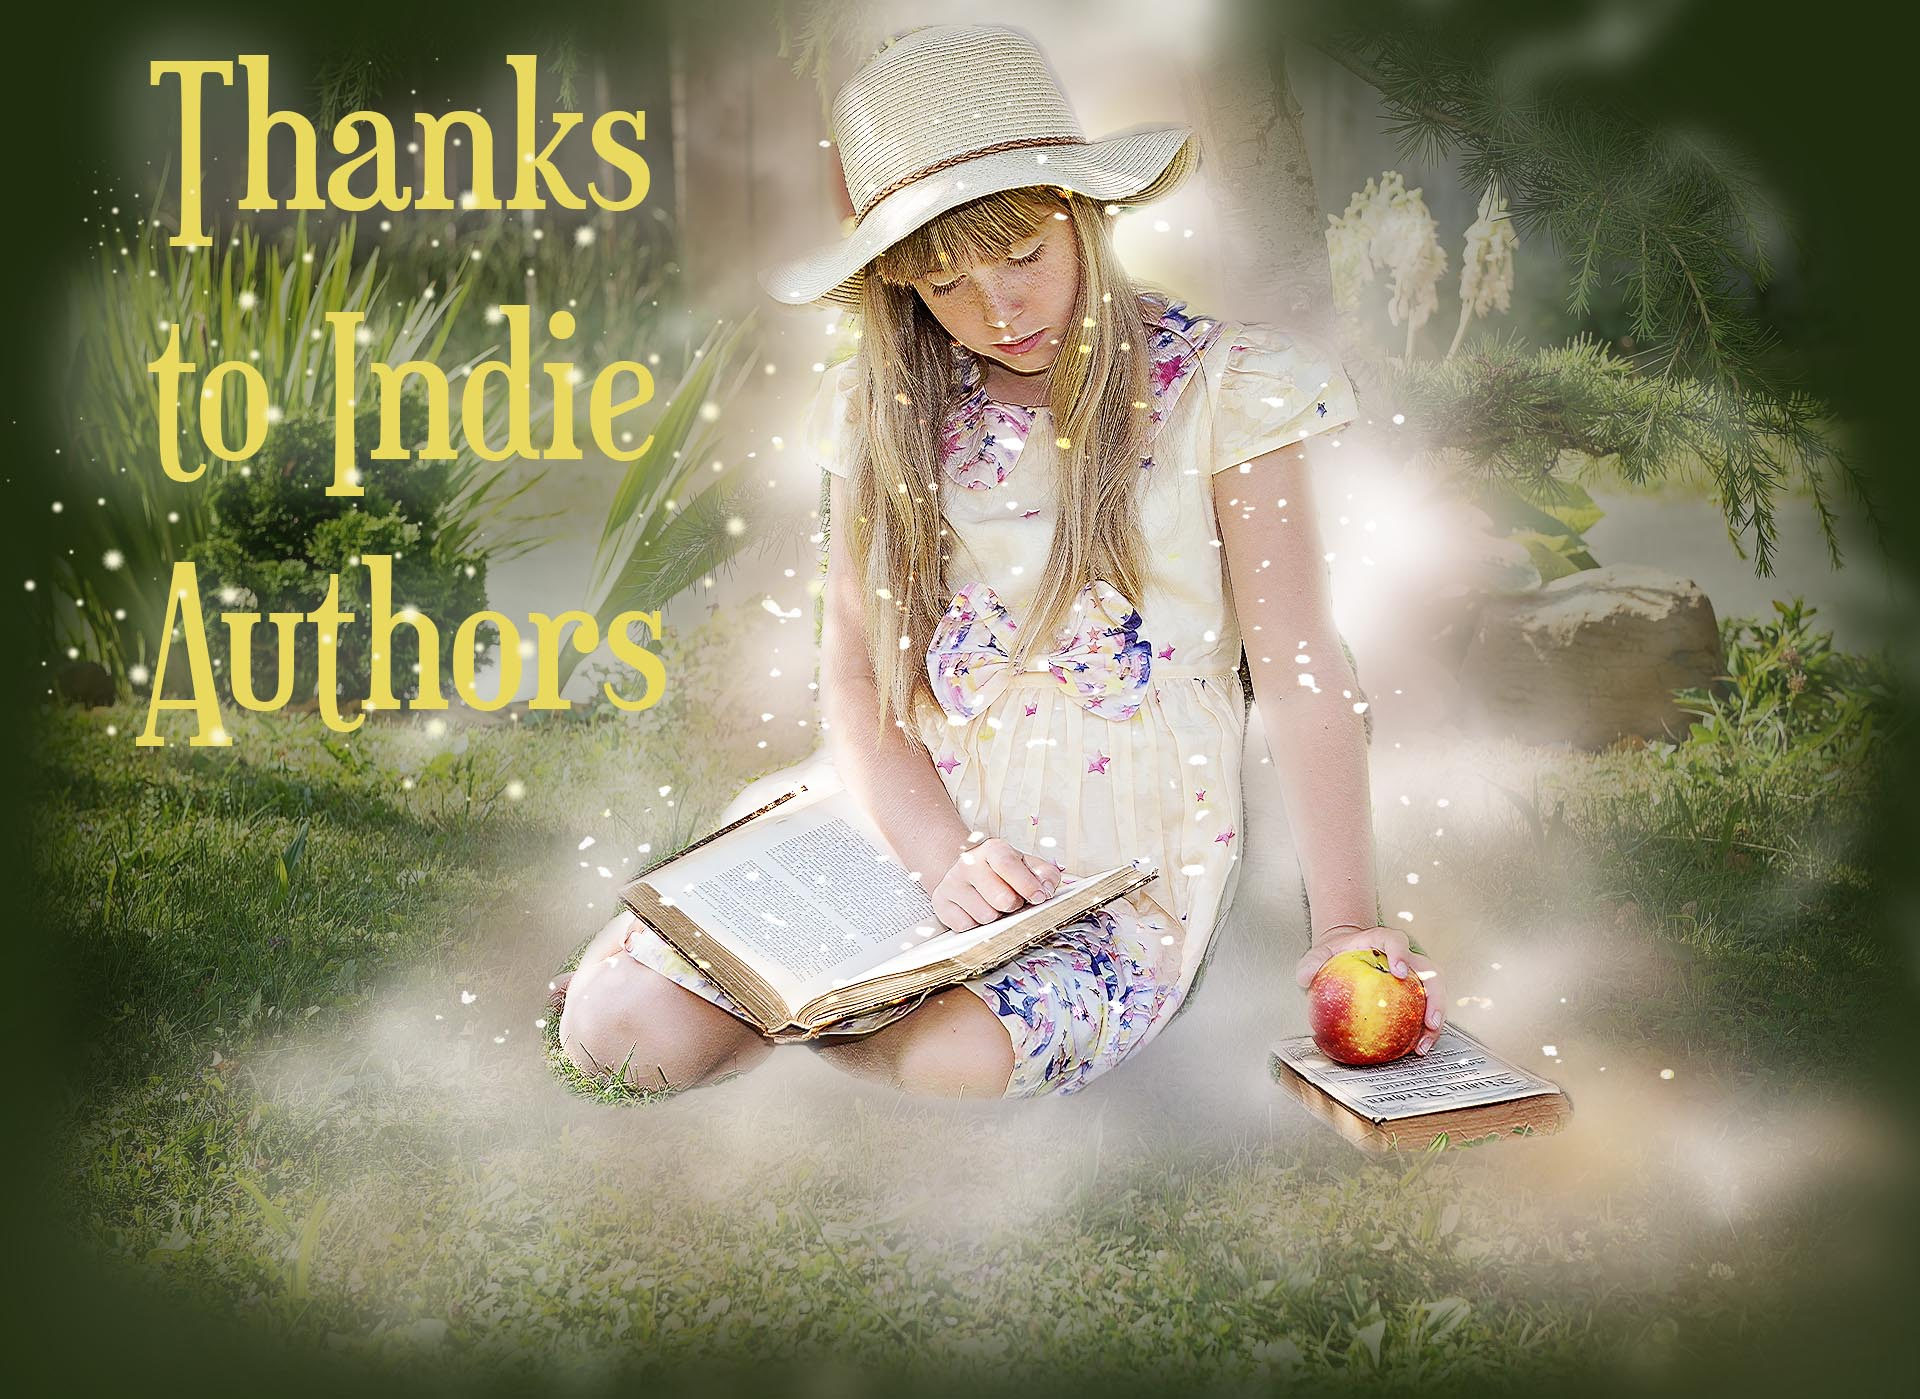 thankful-indie-authors